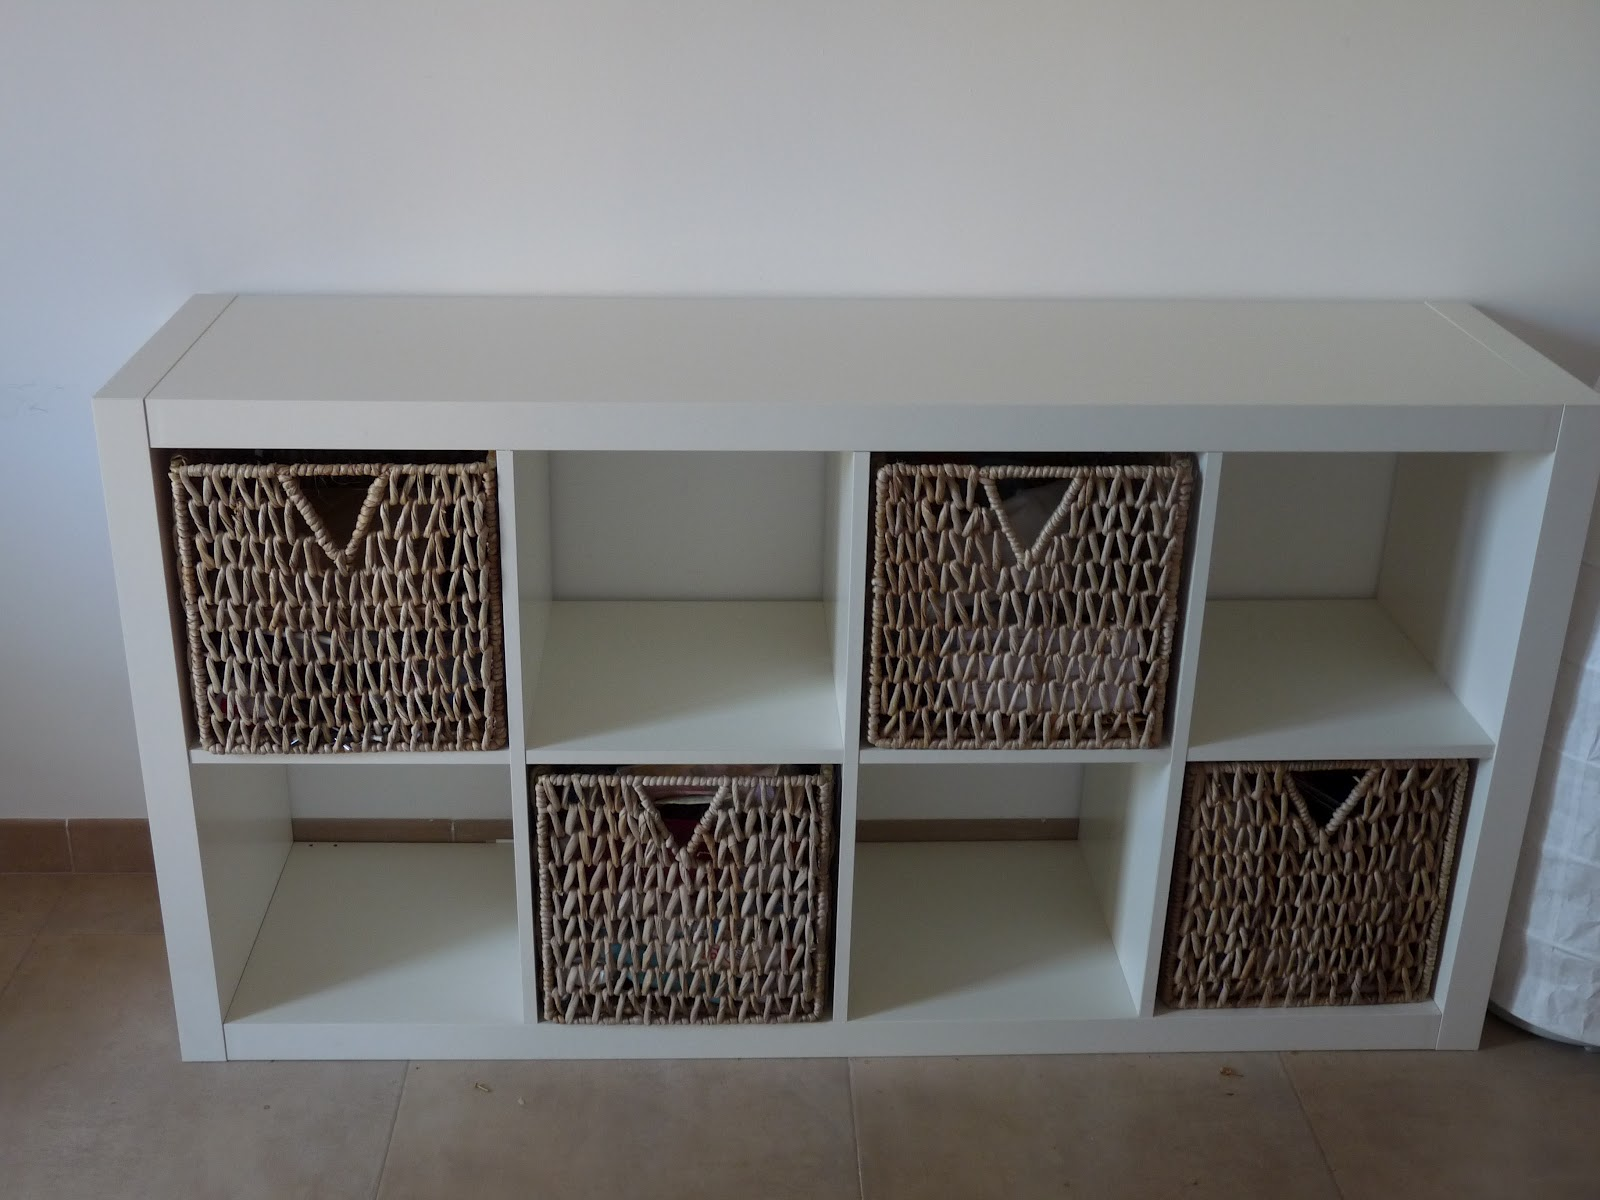 Charmant Stylish Captivating 6 Storage Organized Shelves With Cubical Wicker Storage  Baskets Decor Storage Baskets For Shelves